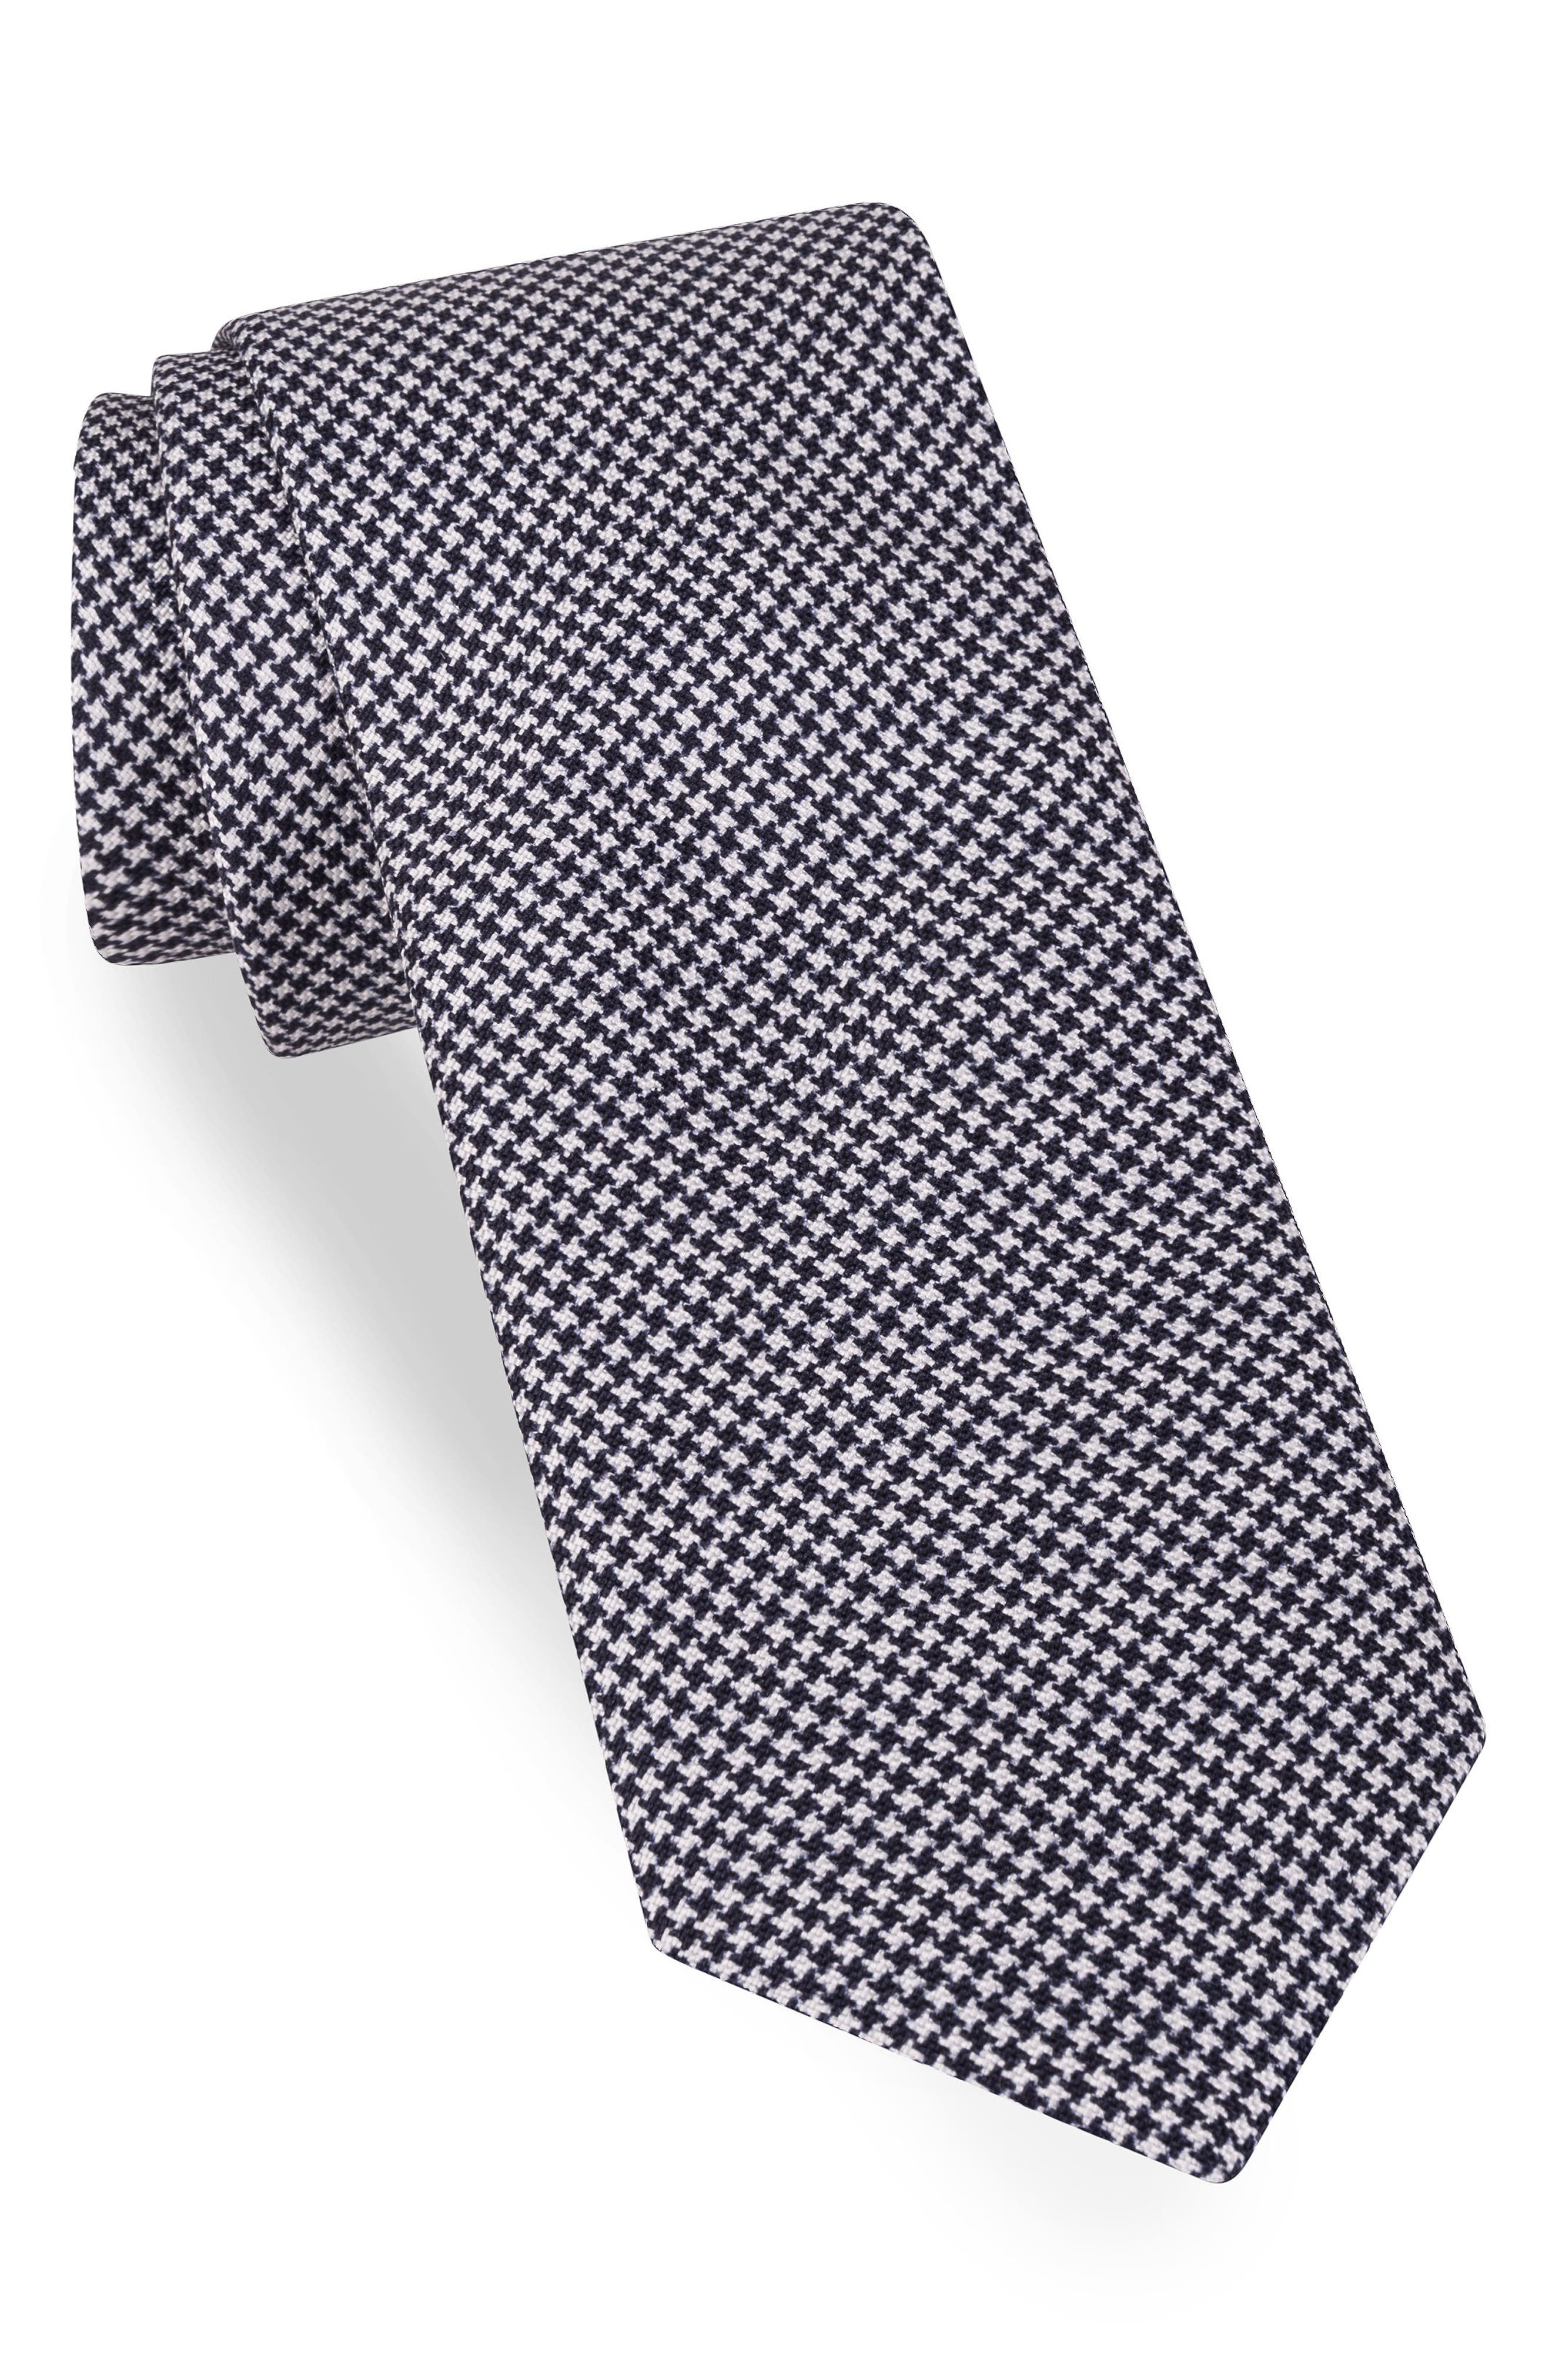 Alternate Image 1 Selected - Ted Baker London Solid Silk Skinny Tie